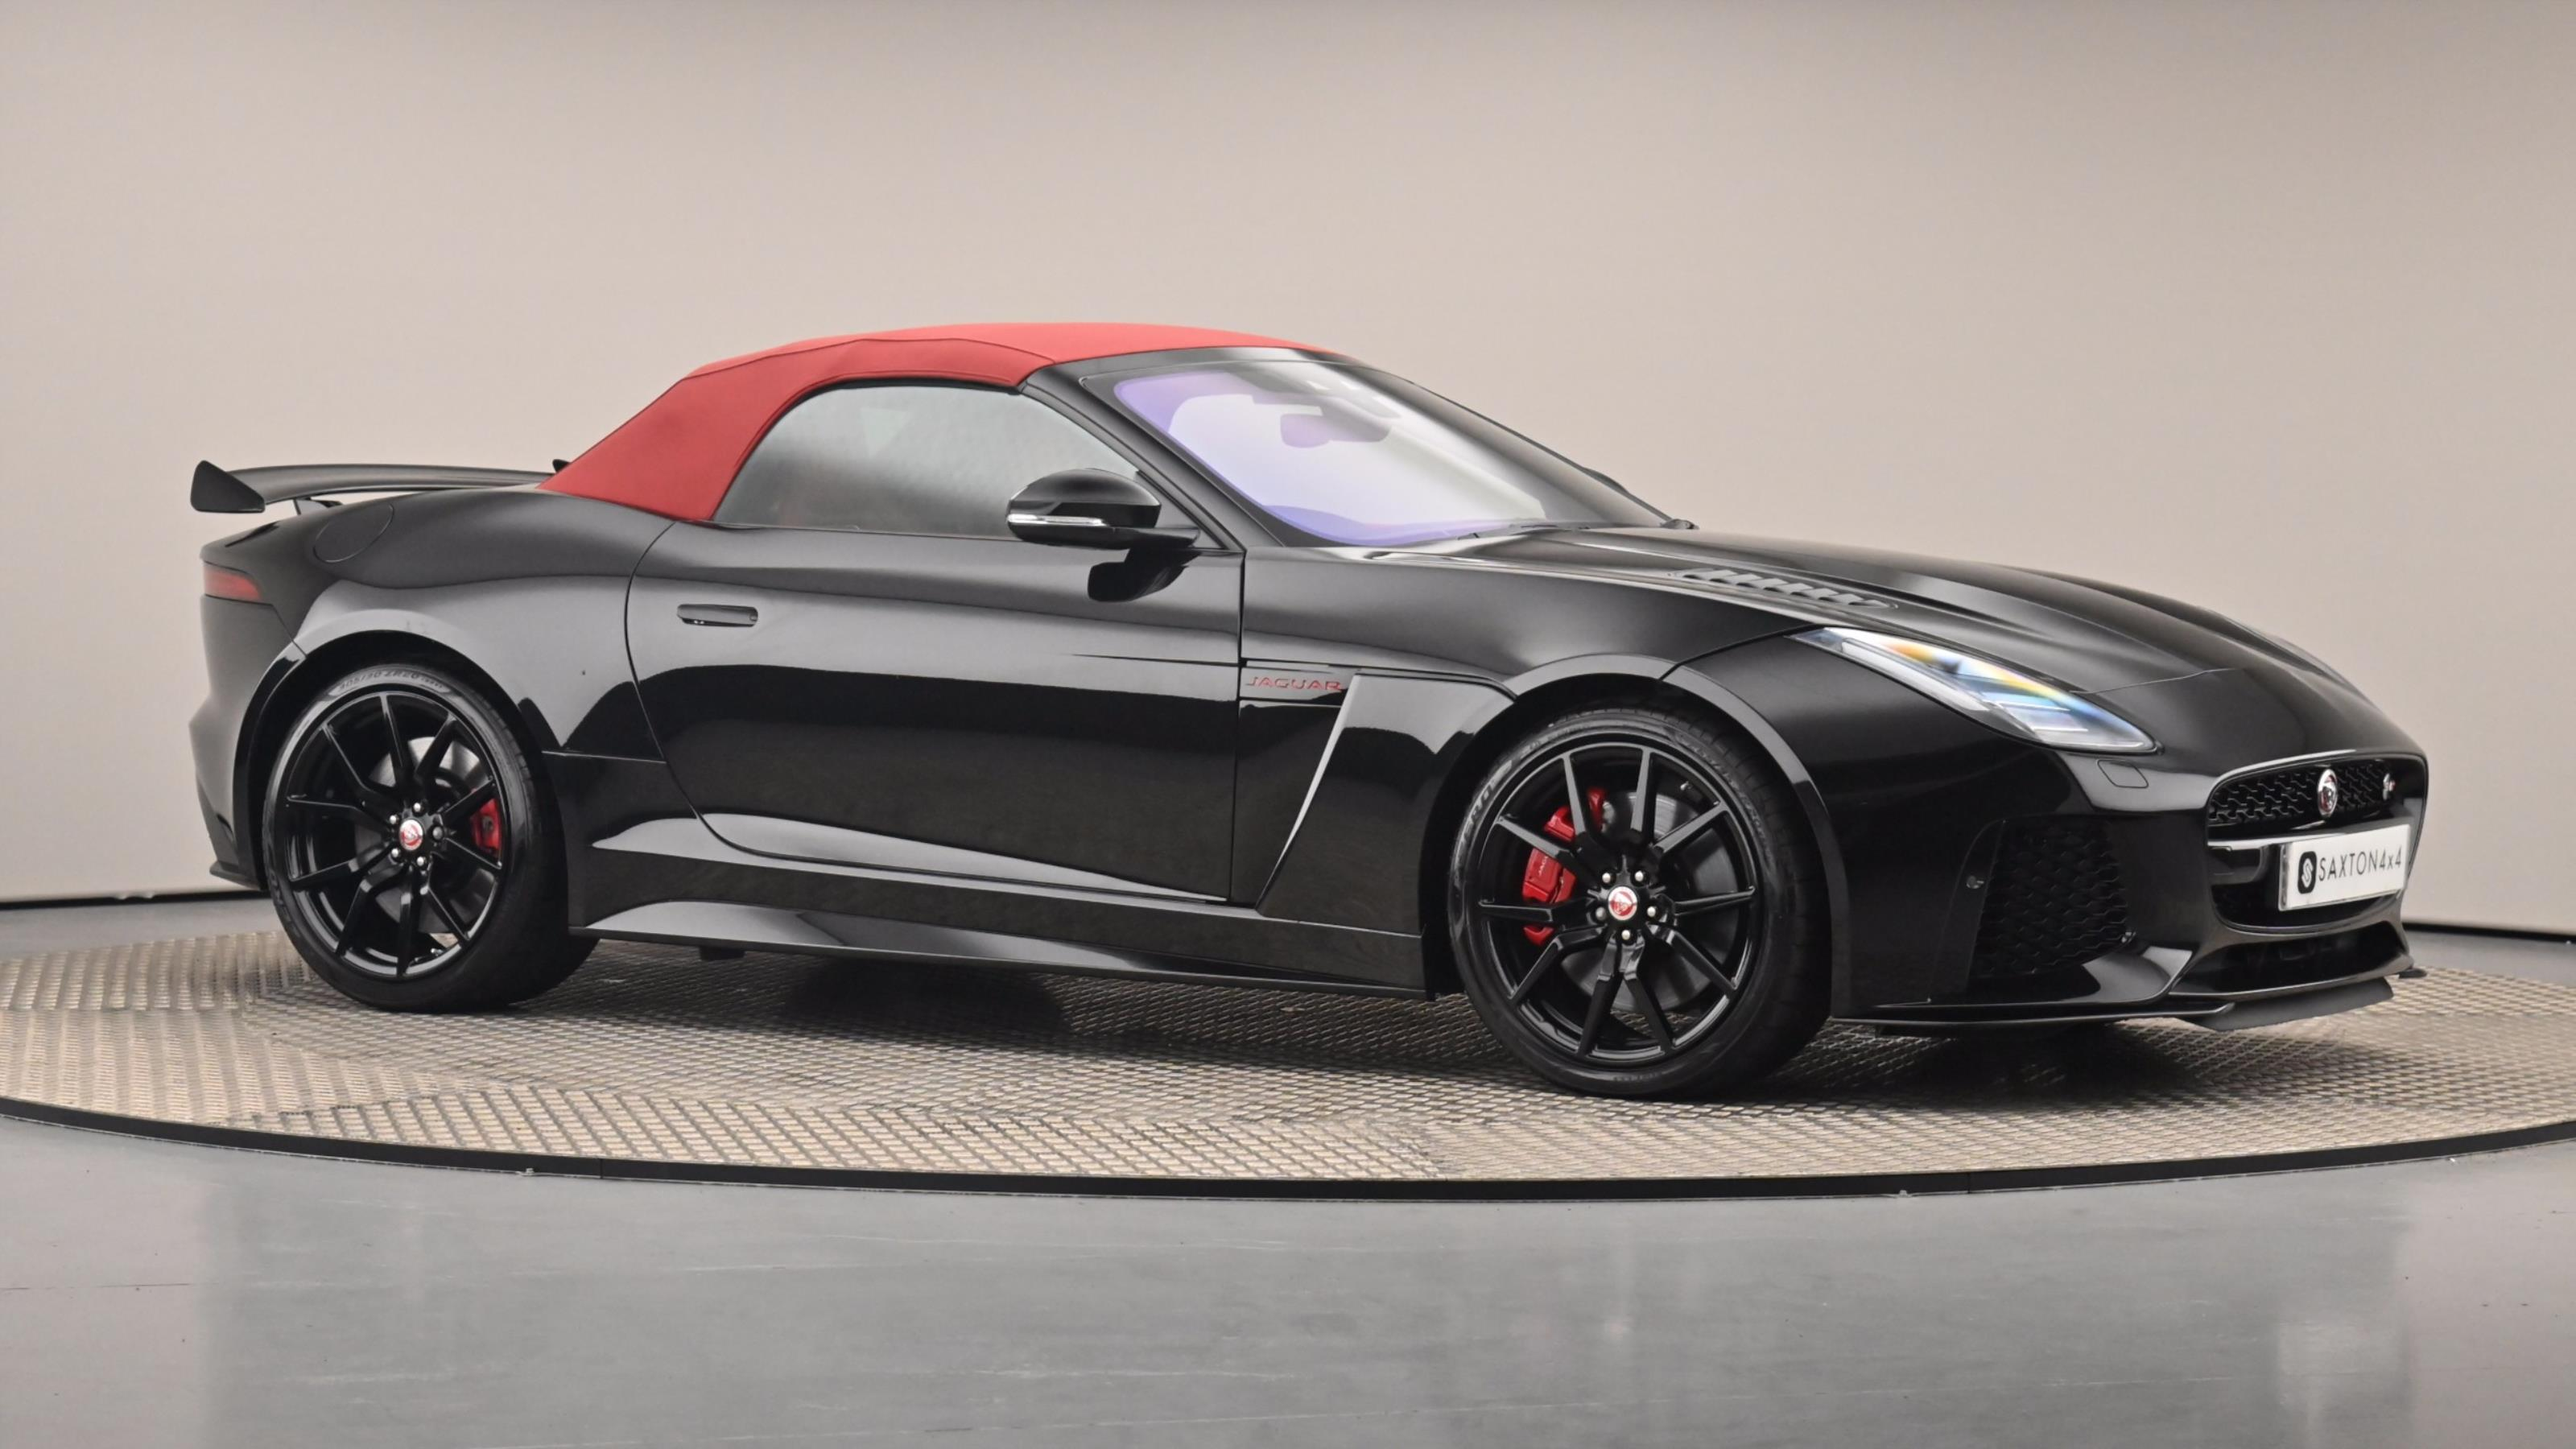 Used 2017 Jaguar F-TYPE 5.0 Supercharged V8 SVR 2dr Auto AWD at Saxton4x4